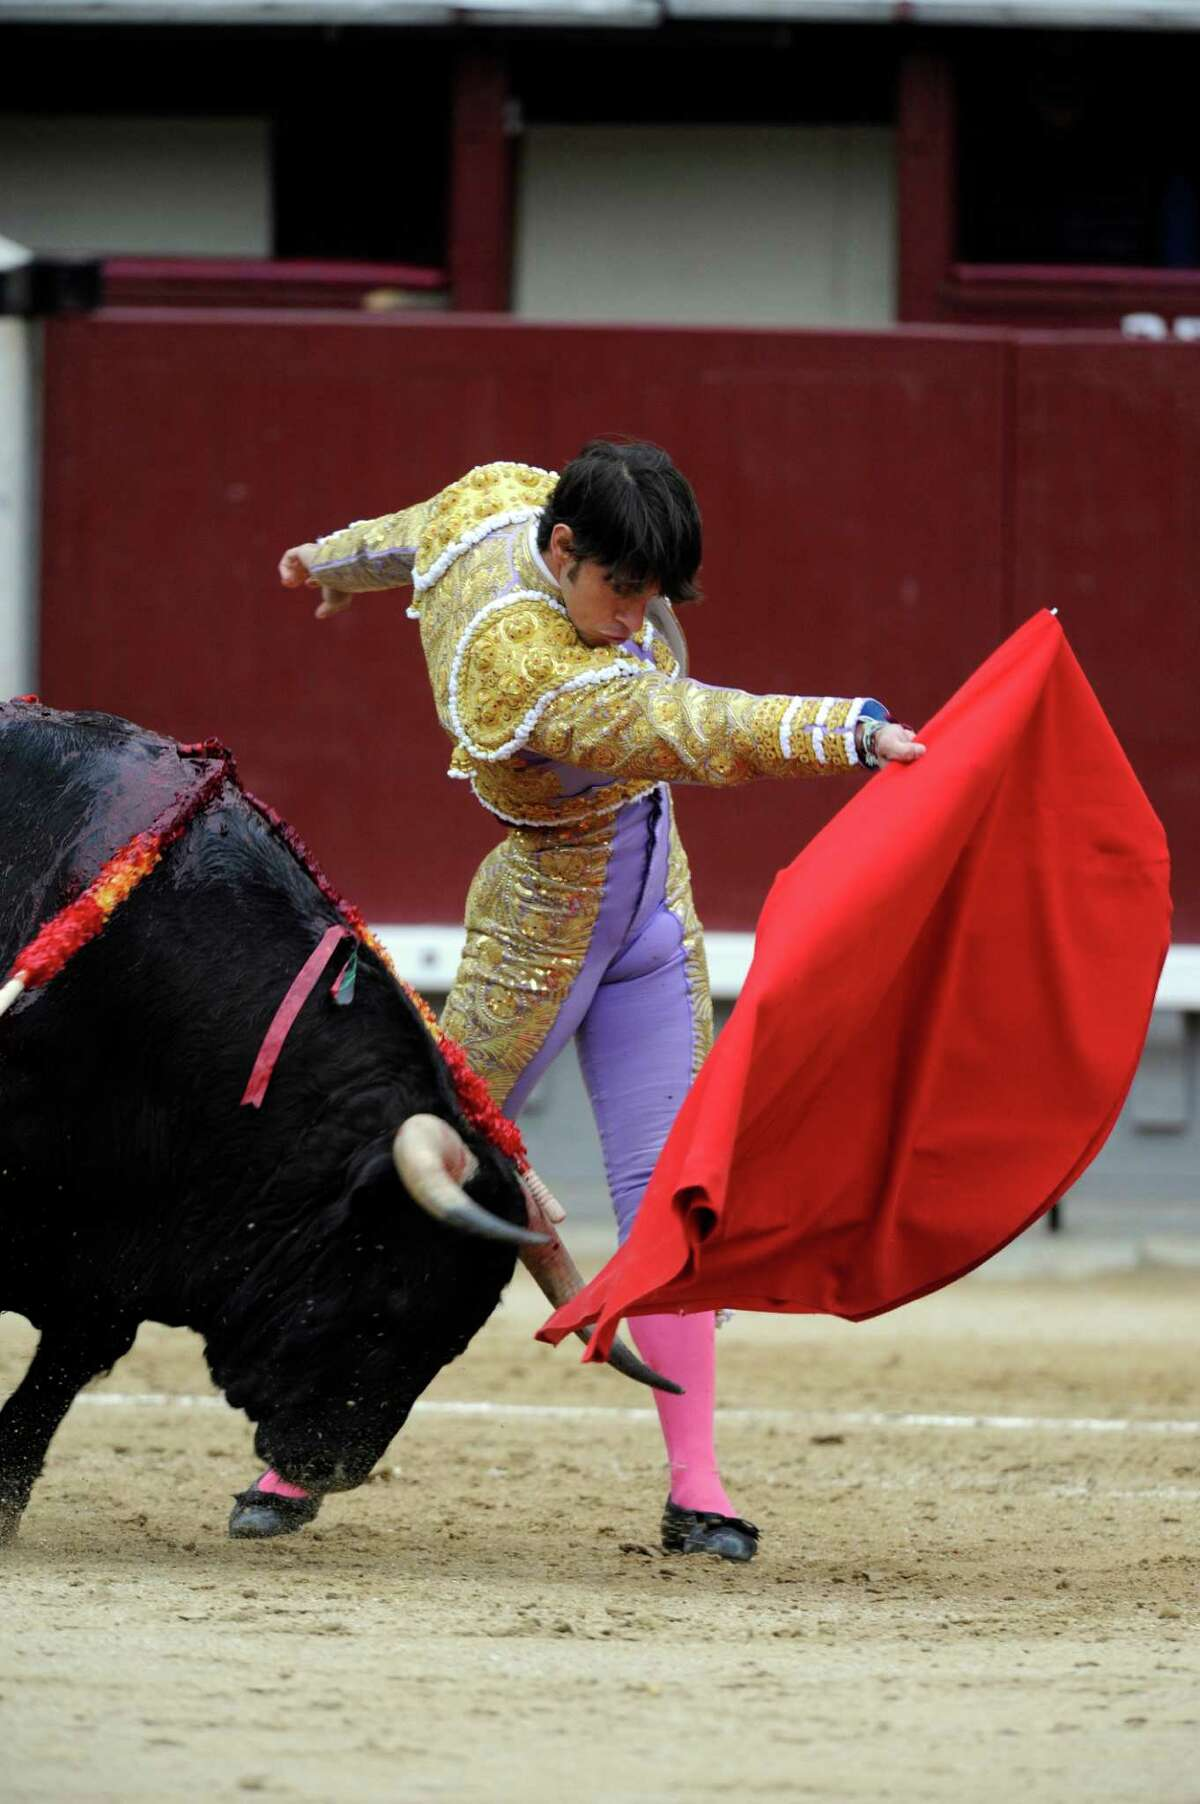 Spanish matador Antonio Nazare is gored by a bull during the San Isidro Fair at Las Ventas bullring on May 20, 2014 in Madrid, Spain. For the first time since 1979, the bullfight was cancelled after the three bullfighters were injured by bulls. (Photo by Europa Press/Europa Press via Getty Images)